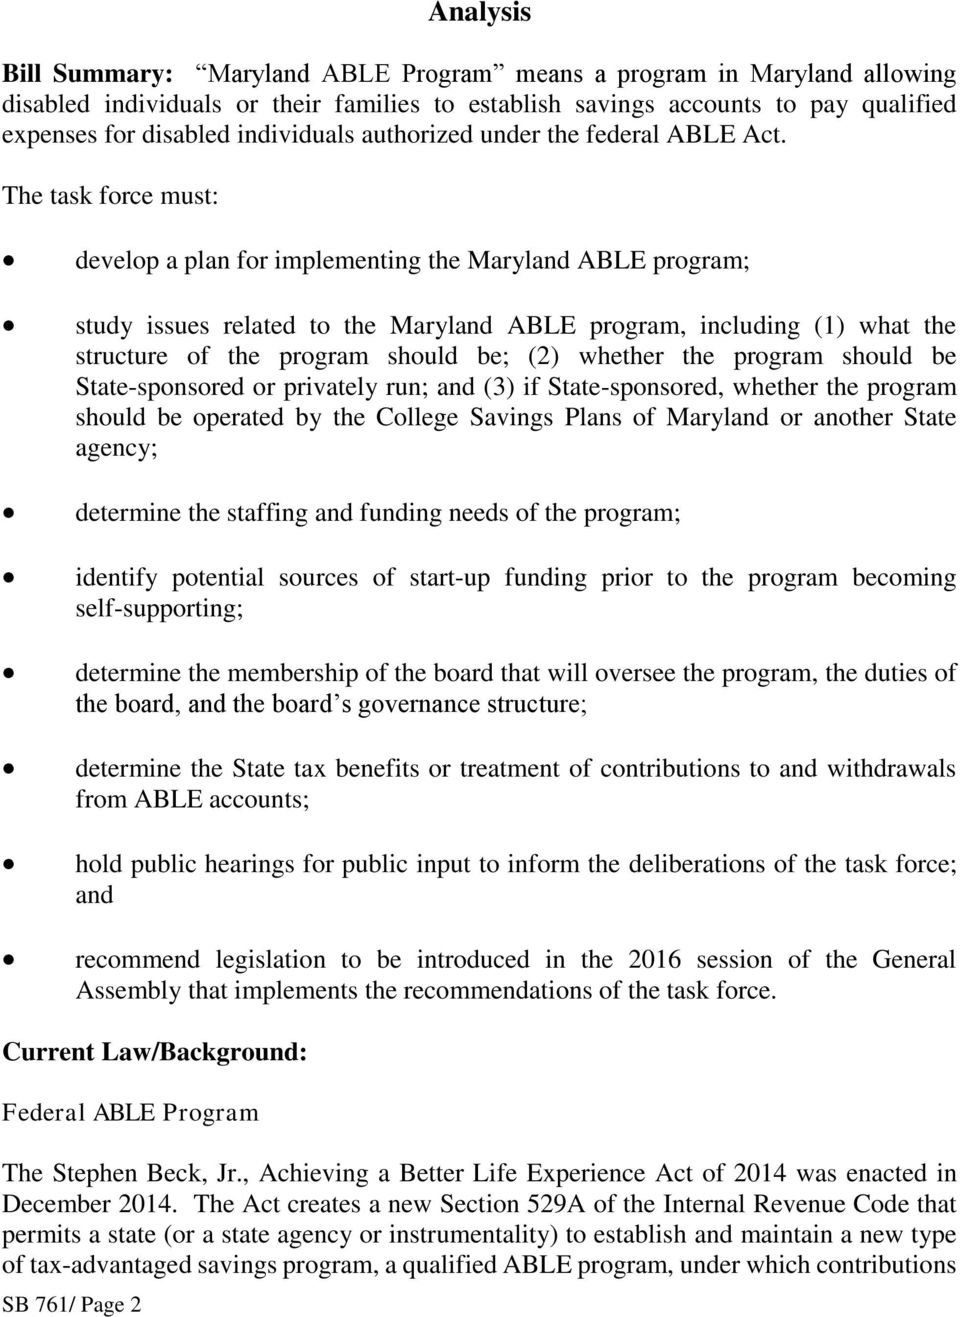 The task force must: develop a plan for implementing the Maryland ABLE program; study issues related to the Maryland ABLE program, including (1) what the structure of the program should be; (2)